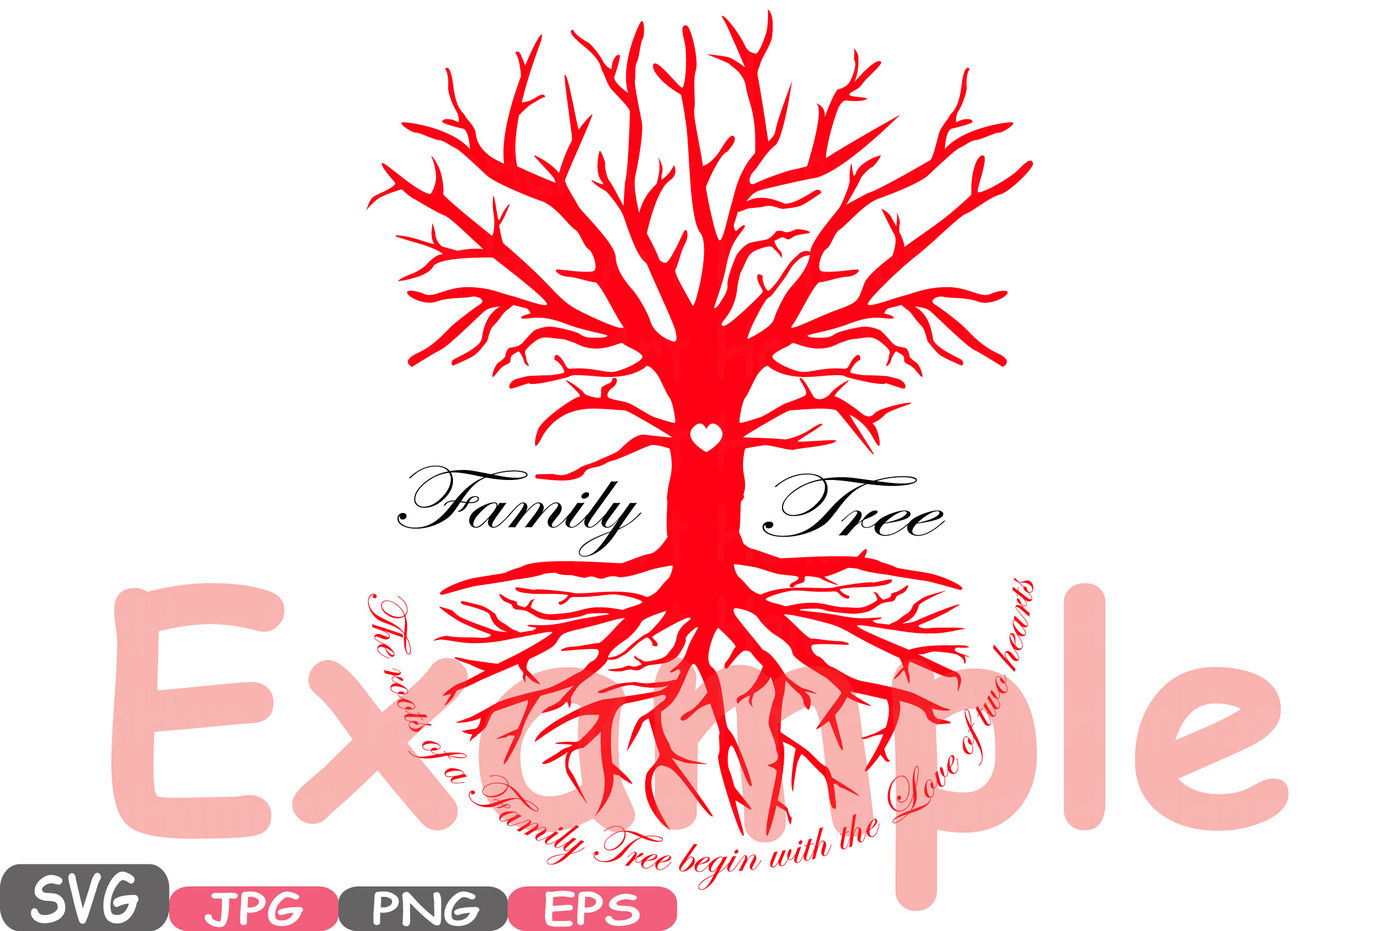 Family Tree Svg Word Art Family Quote Clip Art Silhouette The